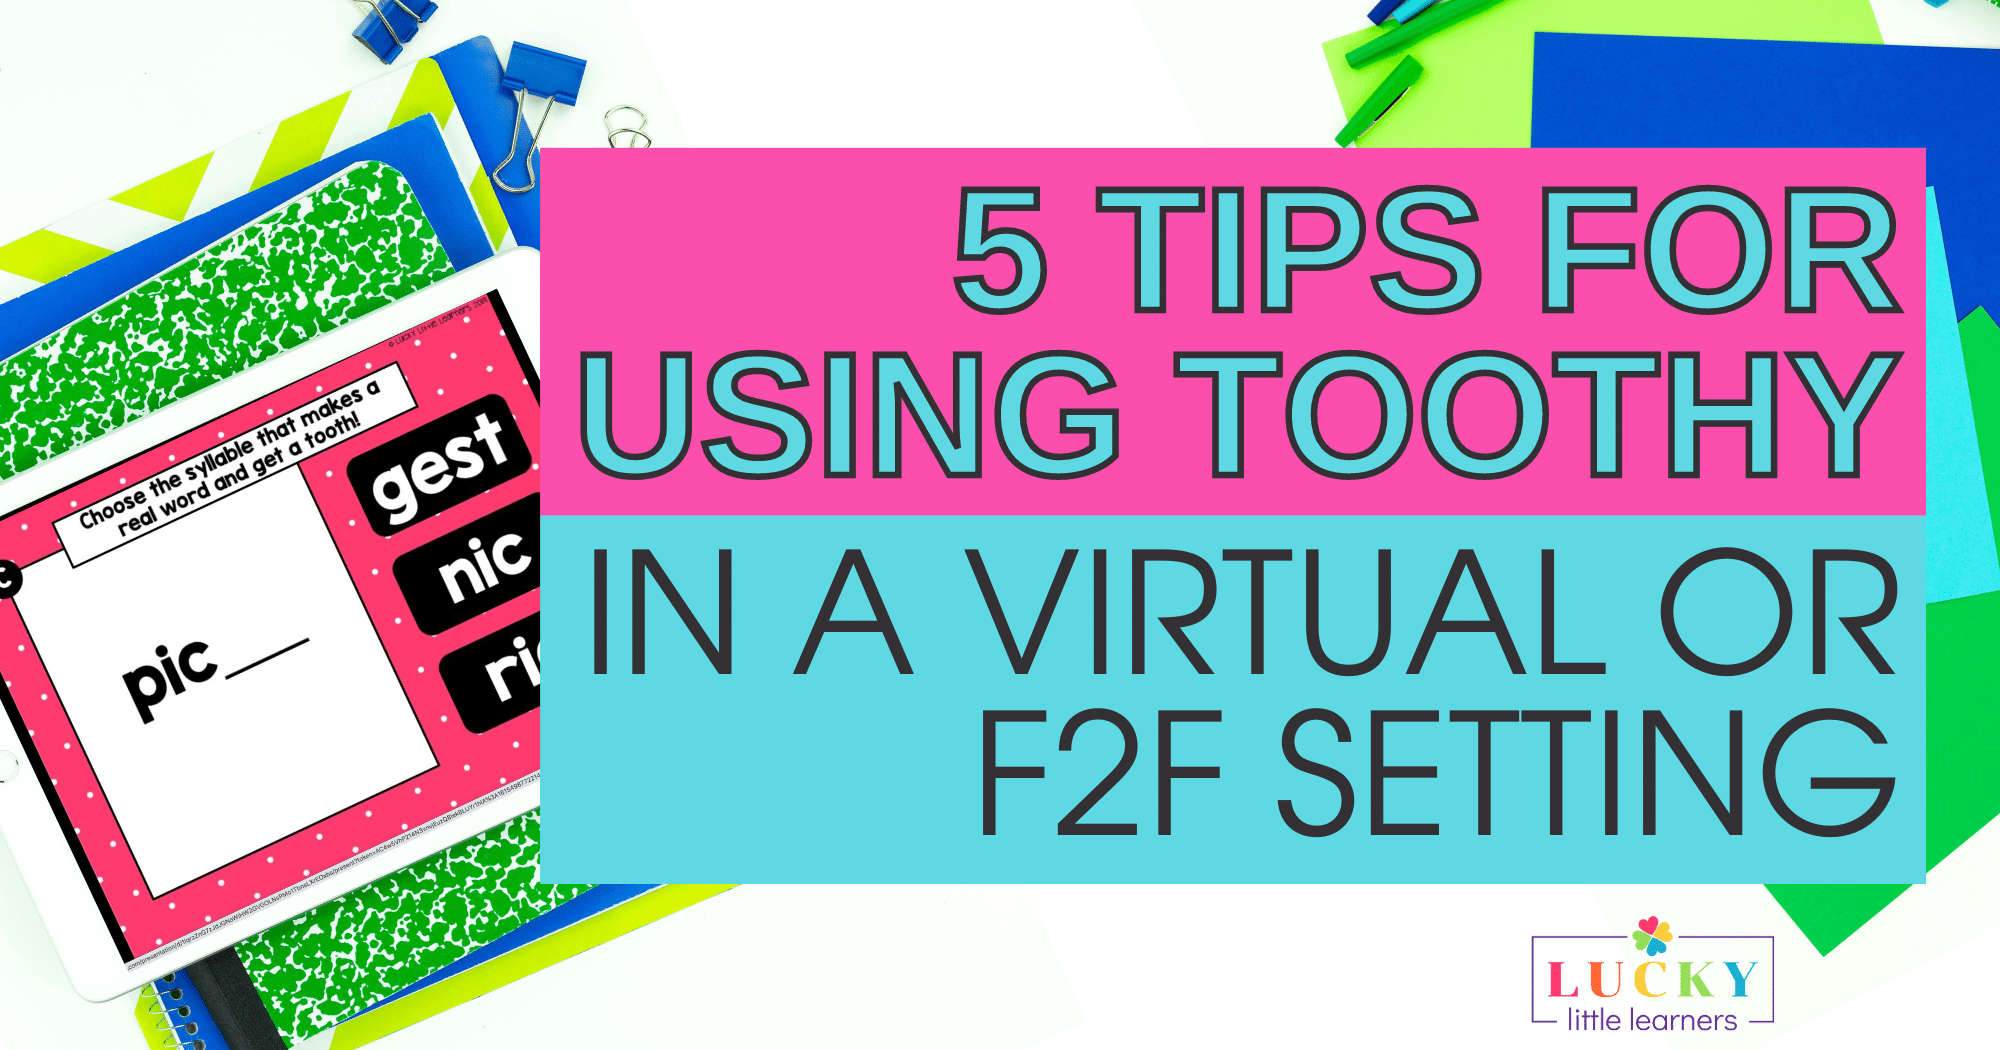 5 Tips For Using Toothy in a Virtual or F2F Setting